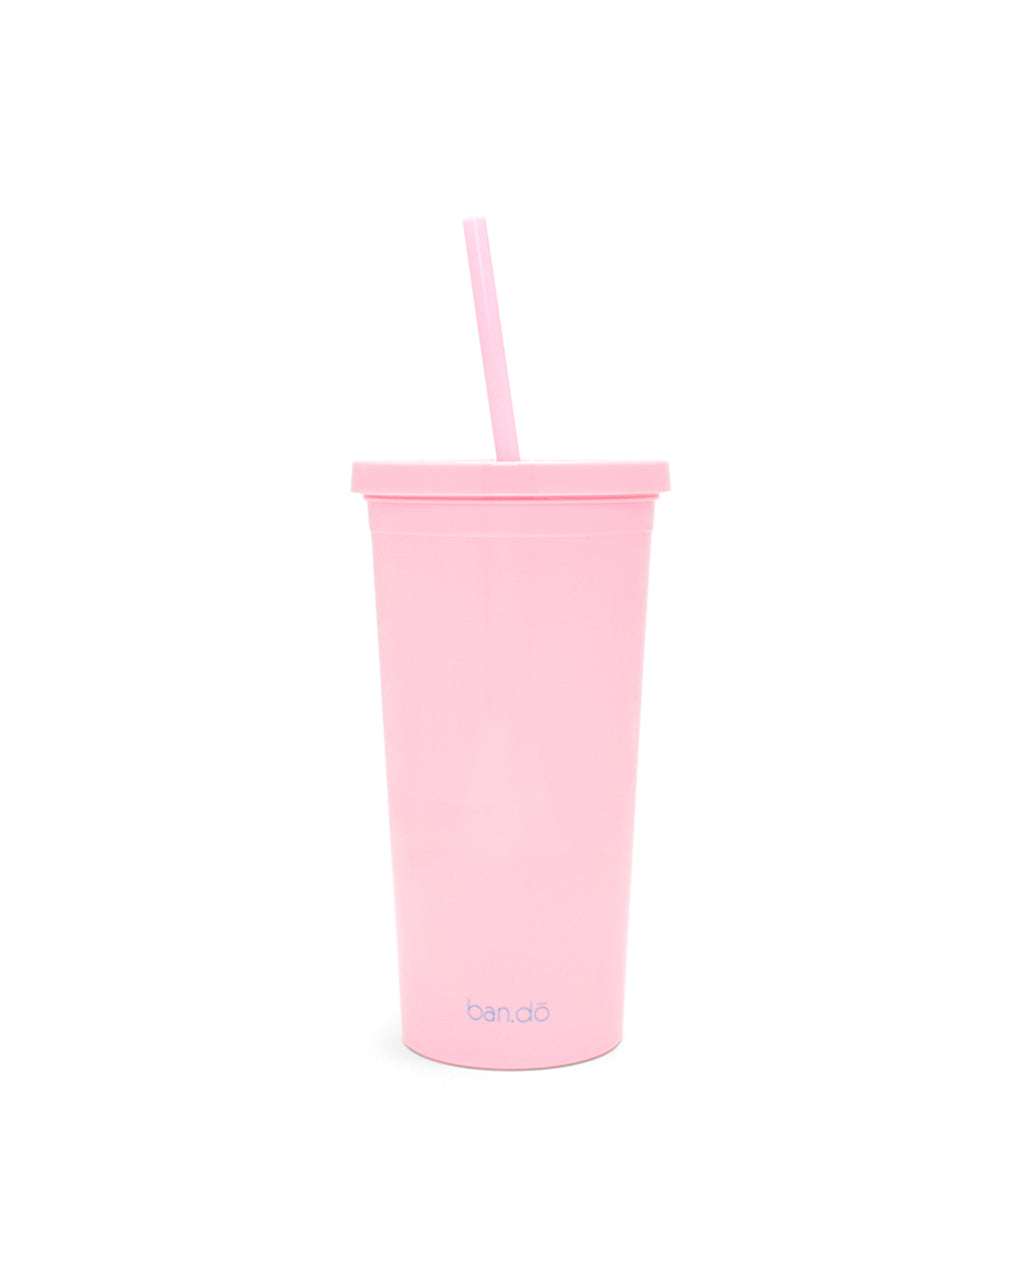 plain pink back up cup with ban.do logo at the bottom